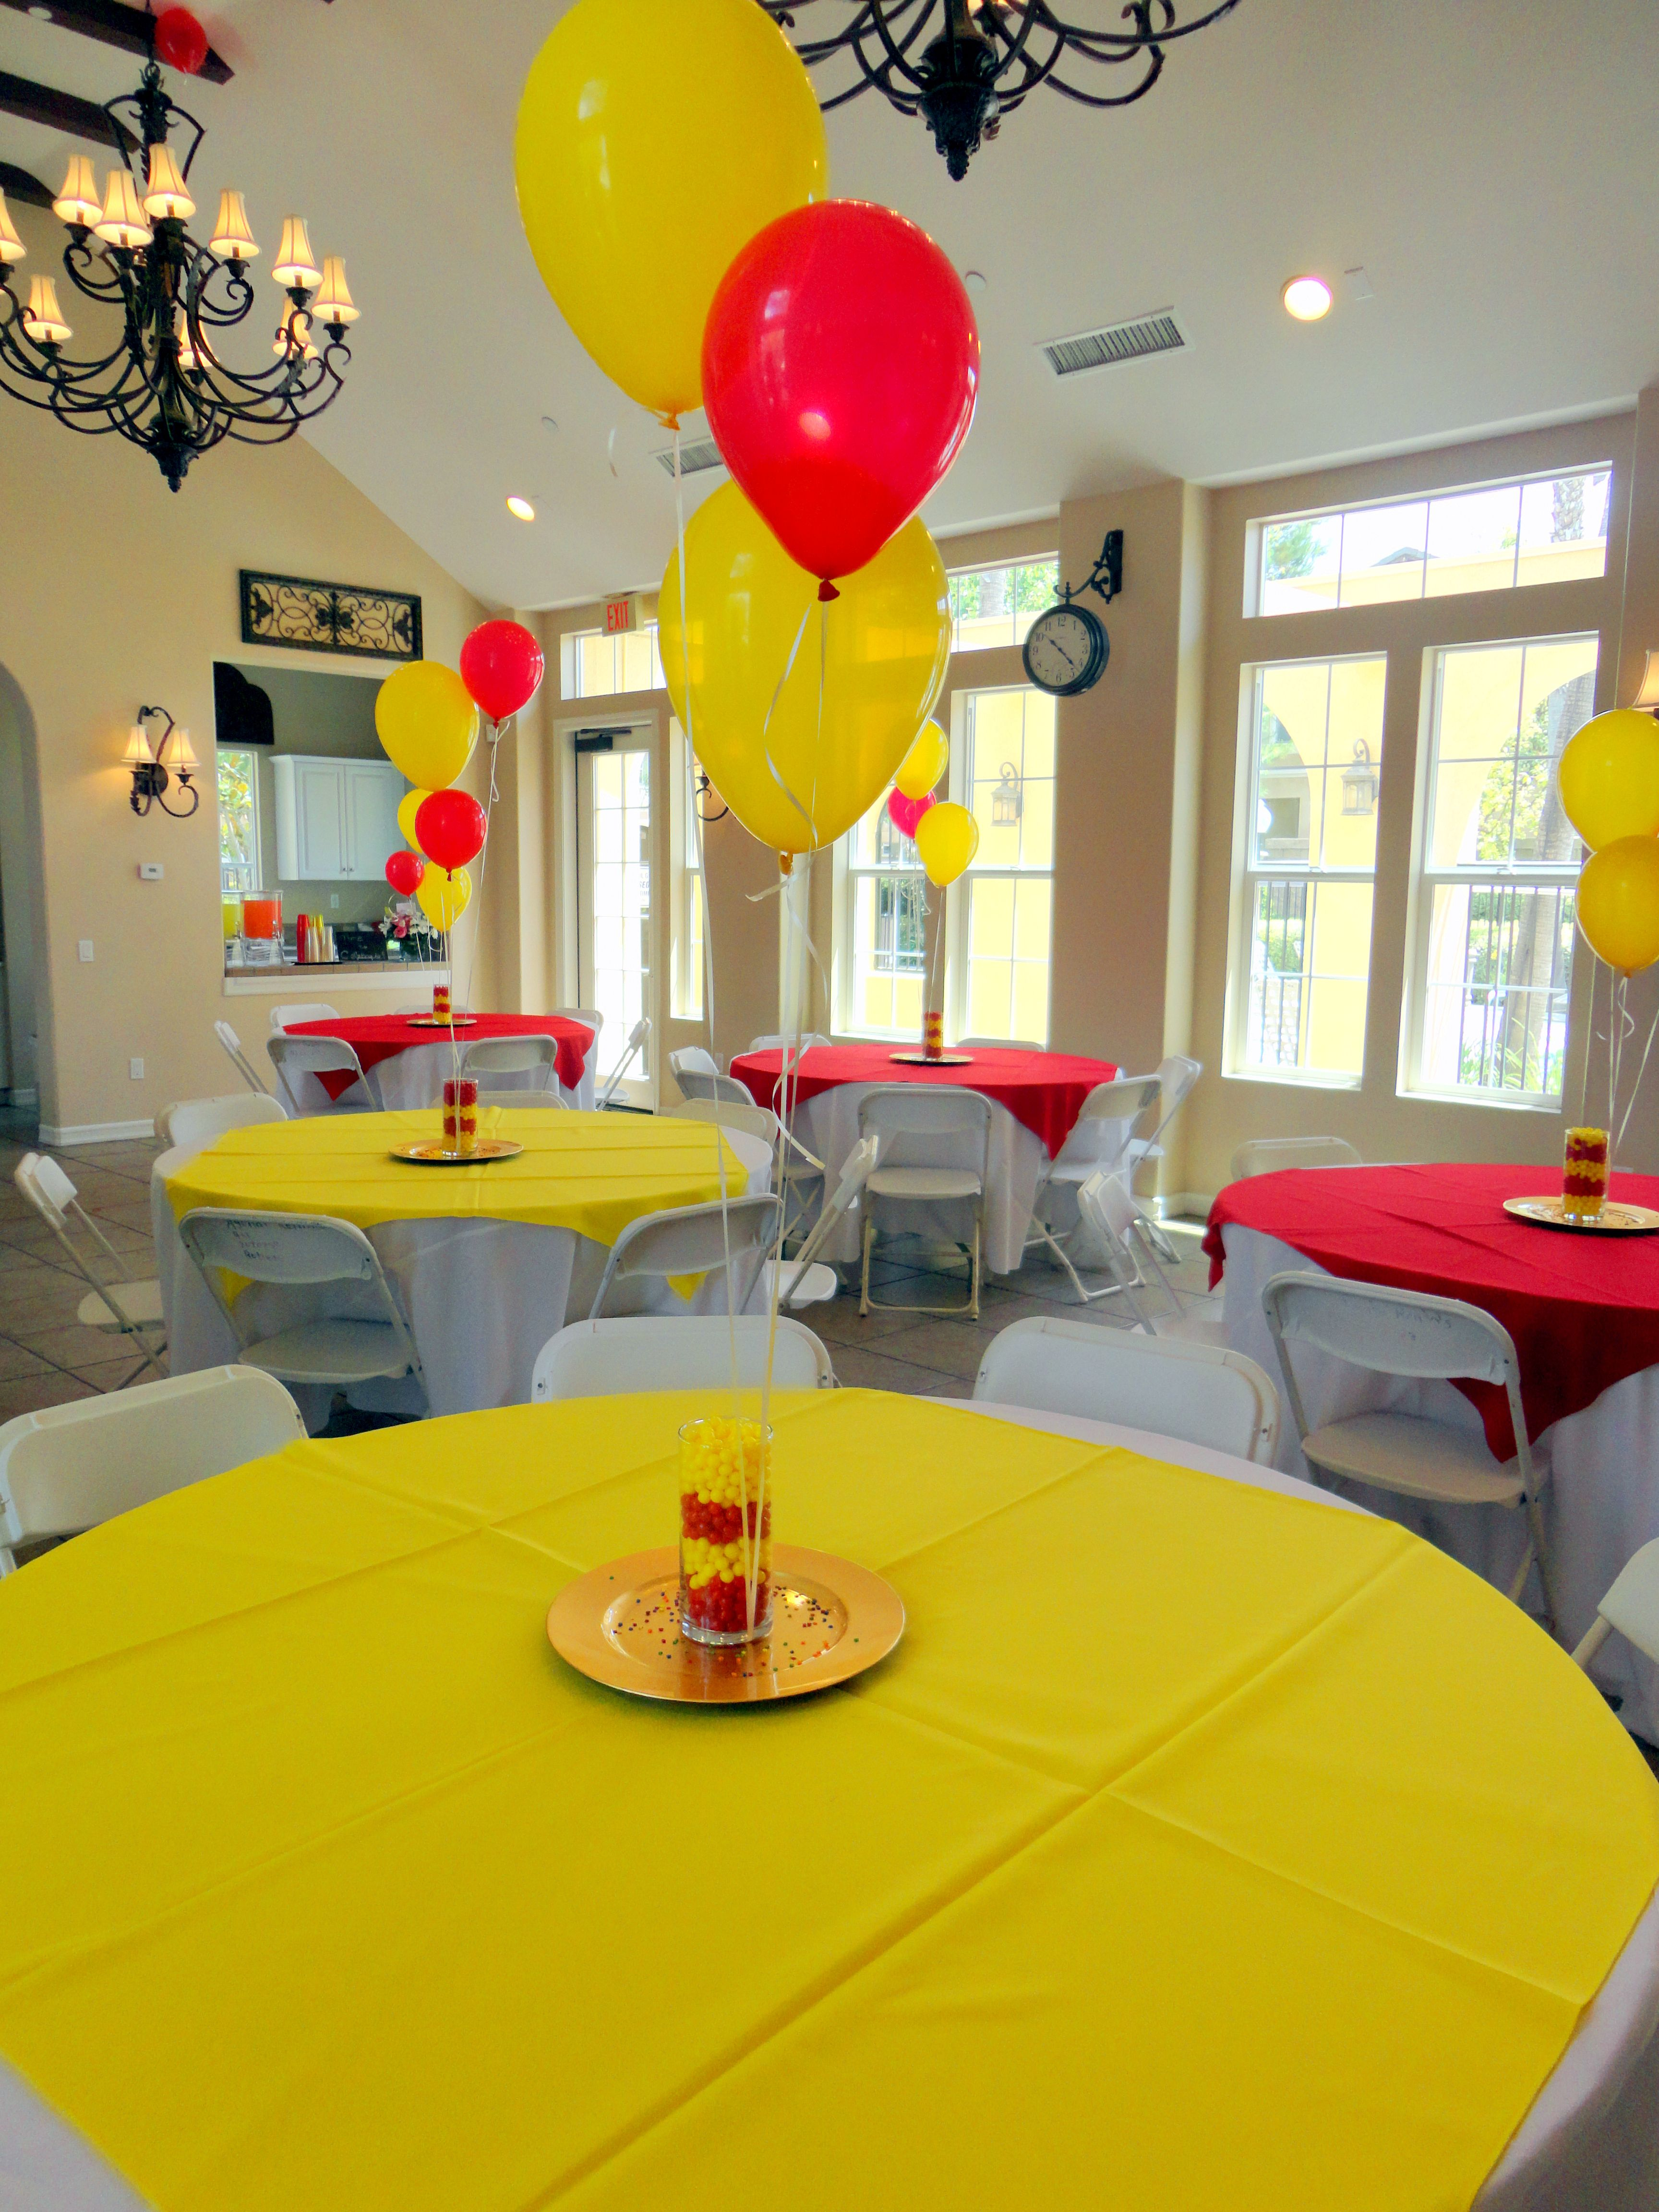 Alternated Red And Yellow Table Cloth Overlays Centerpieces Were